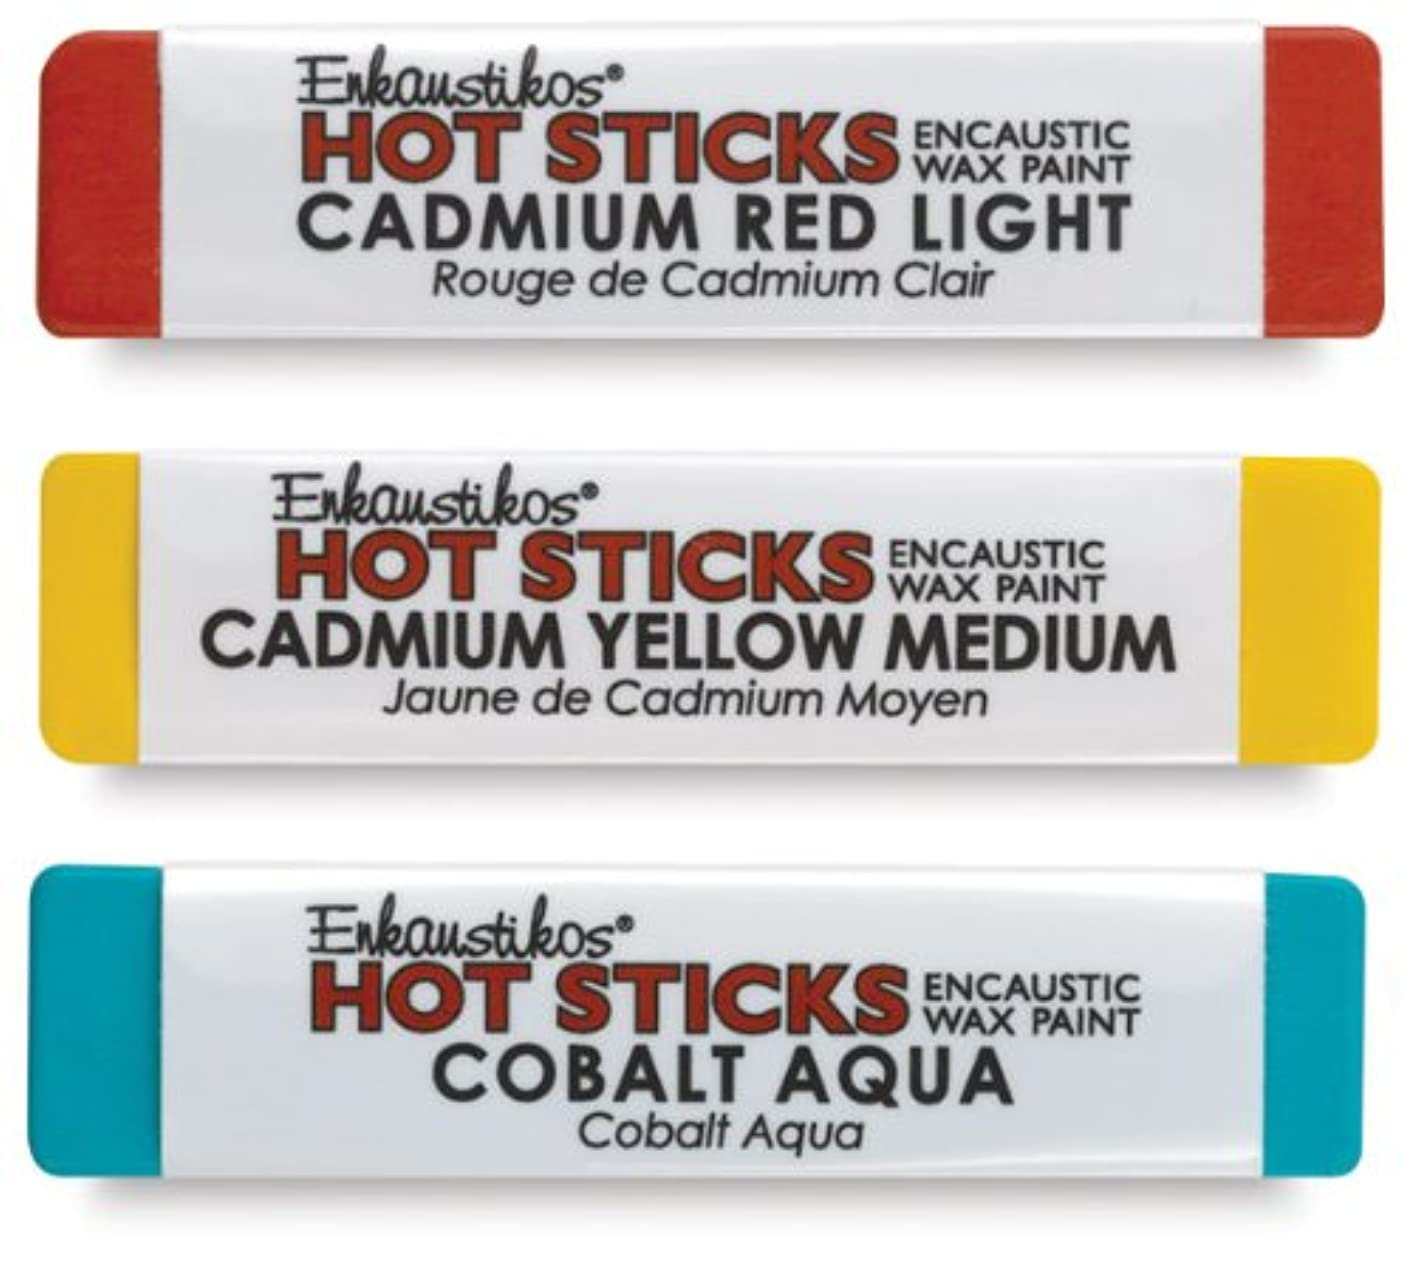 Hot Sticks Encaustic Wax Paints - Sage Green